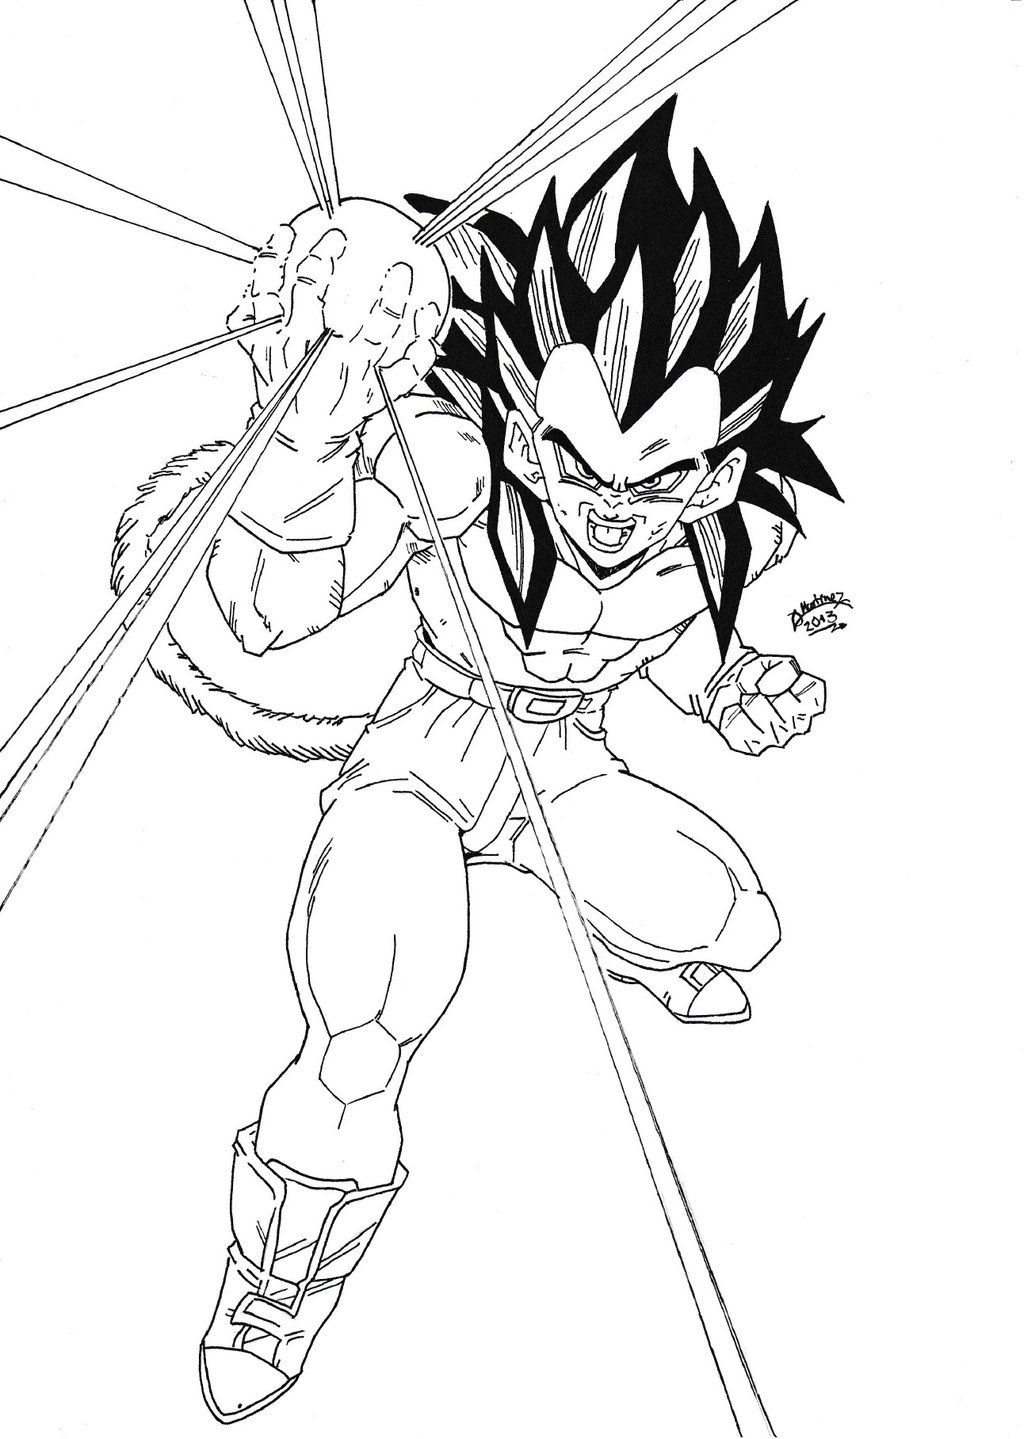 Dragon Ball Z Vegeta Coloring Pages - Coloring Home